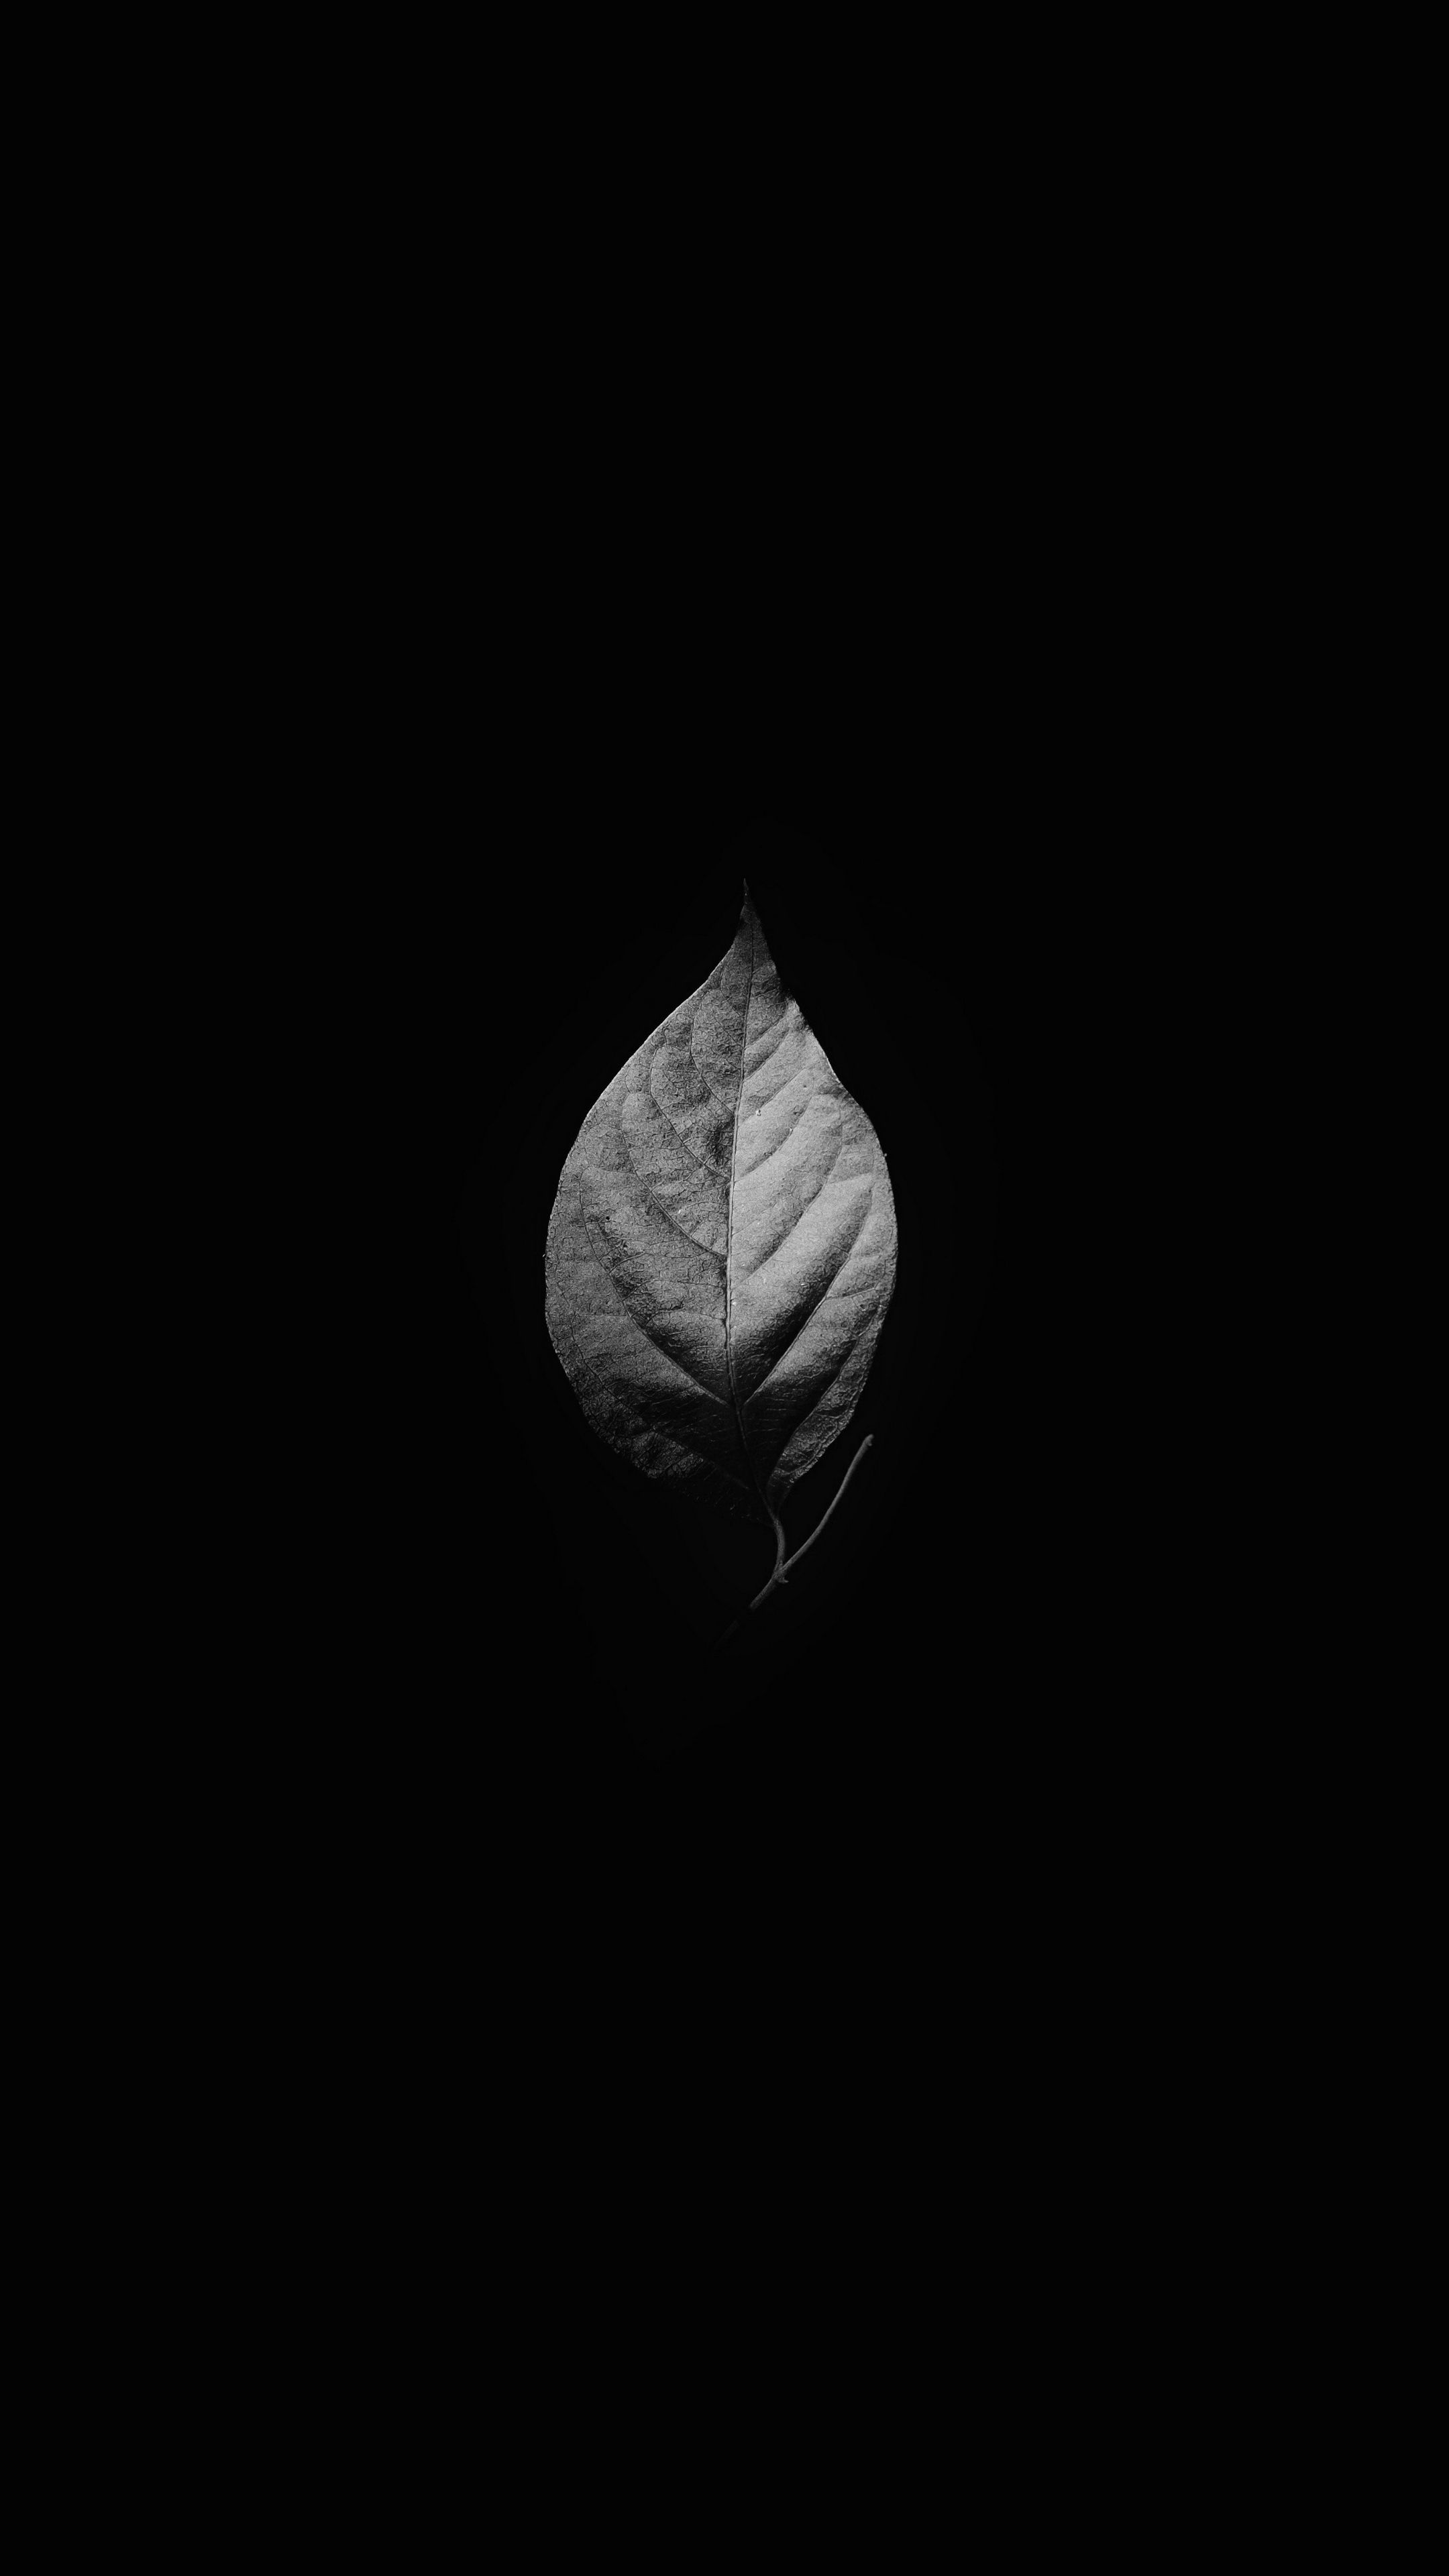 Misc Leaf Bw Blackbackground Wallpapers Hd 4k Background For Android Black Background Wallpaper Black And White Wallpaper Iphone Grey Wallpaper Hd Iphone